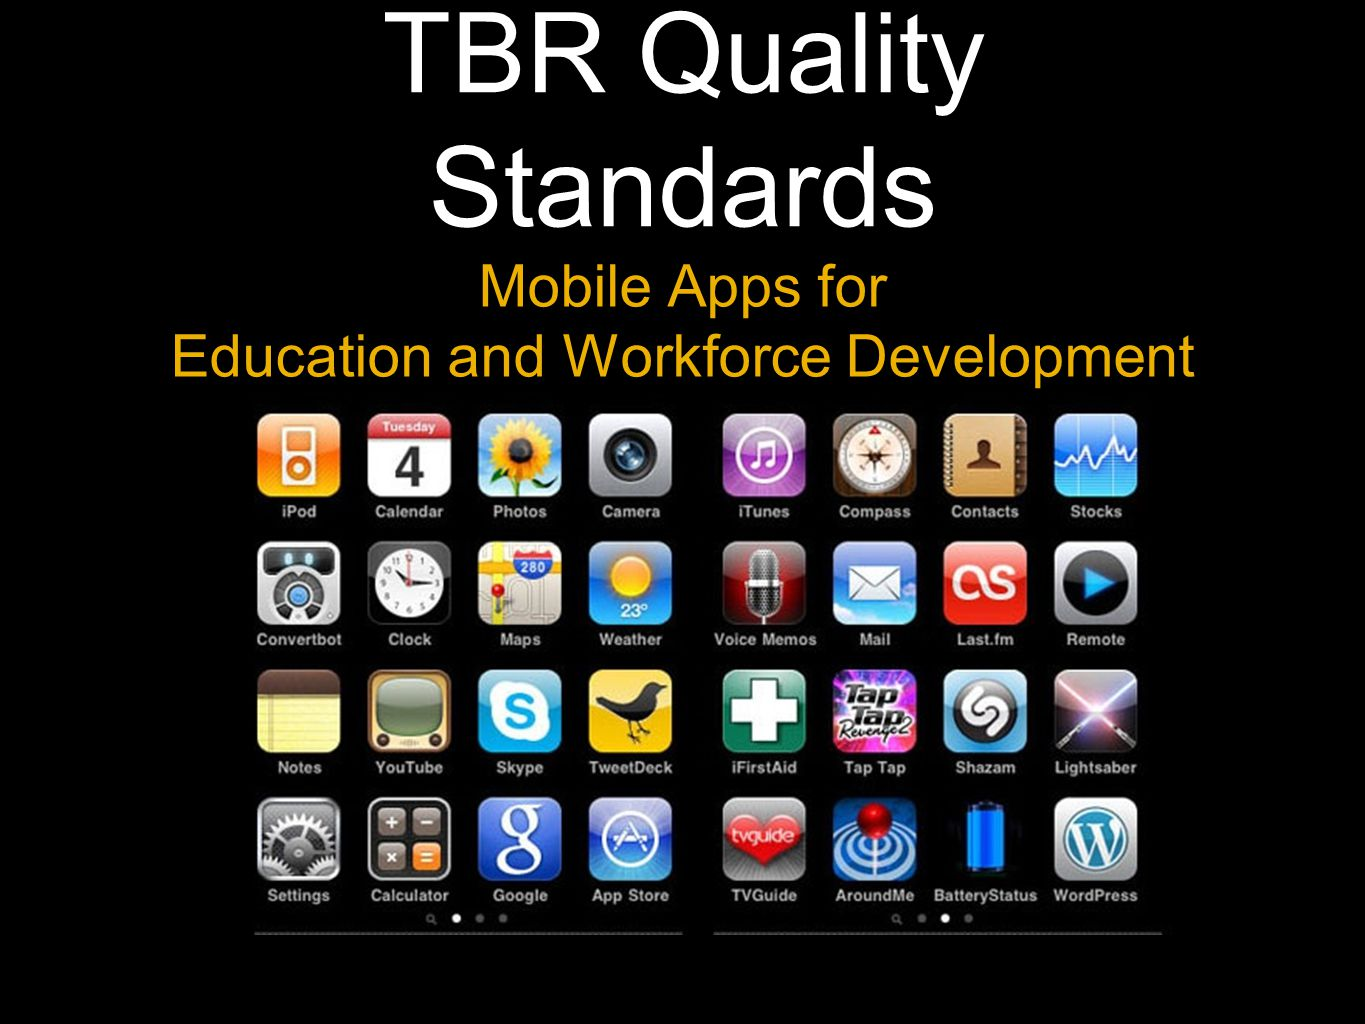 TBR Quality Standards Mobile Apps for Education and Workforce Development